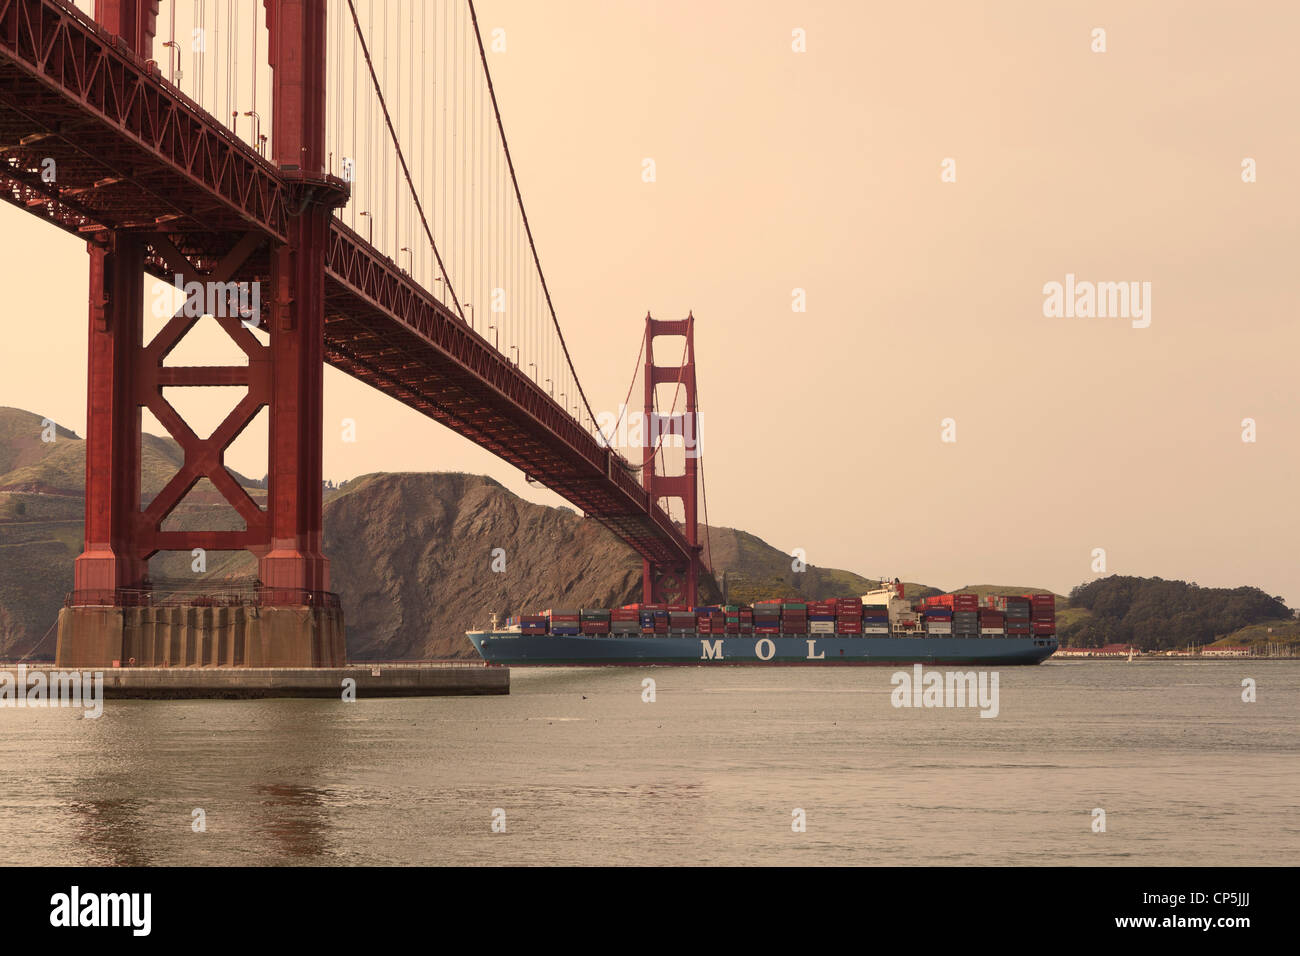 MOL (Mitsui OSK Lines) shipping container vessel leaving the San Francisco bay - California USA - Stock Image